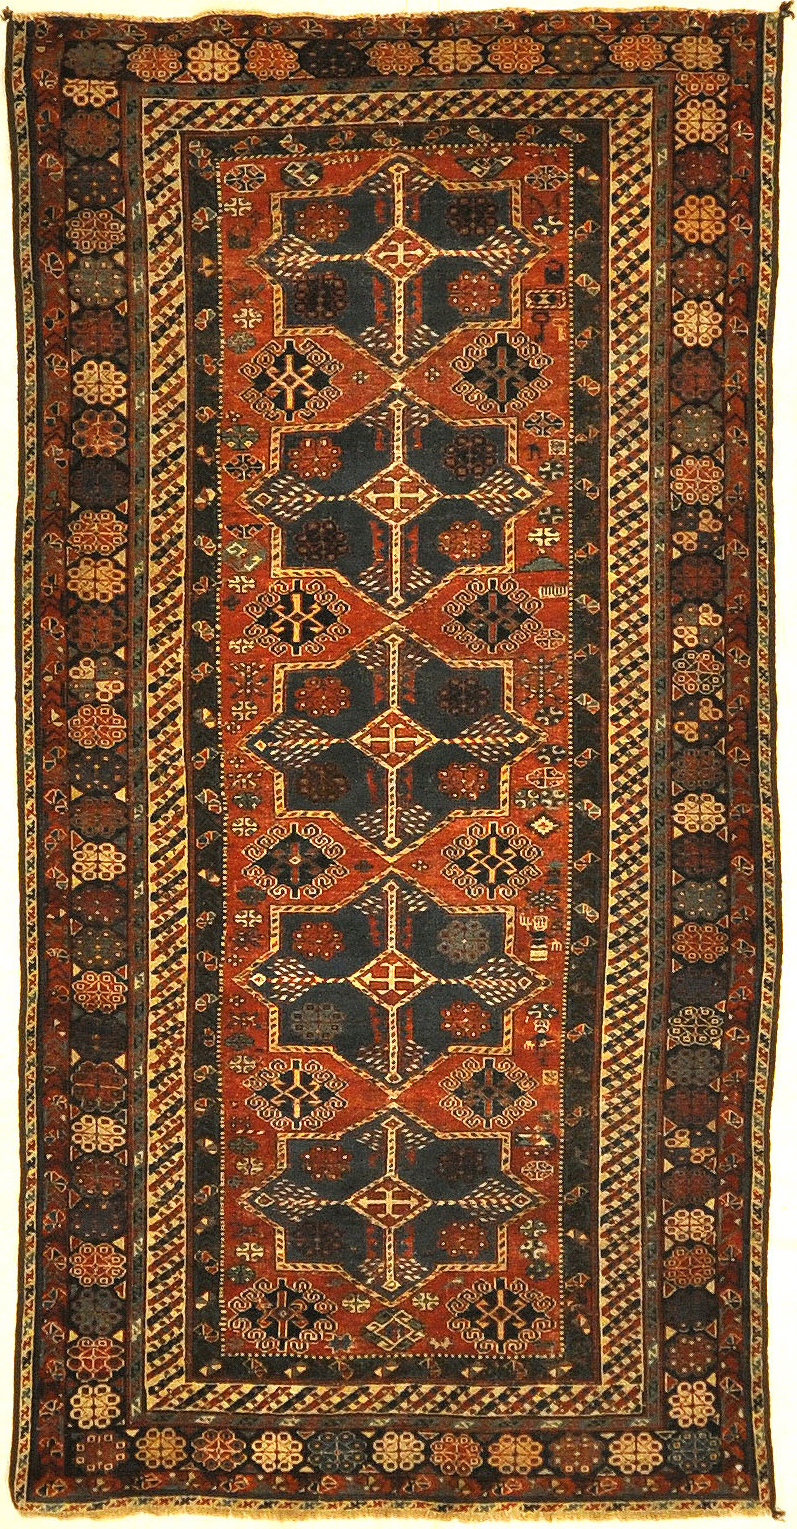 Antique West Persian Kurdish Rug | Santa Barbara Design Center | Rugs and More